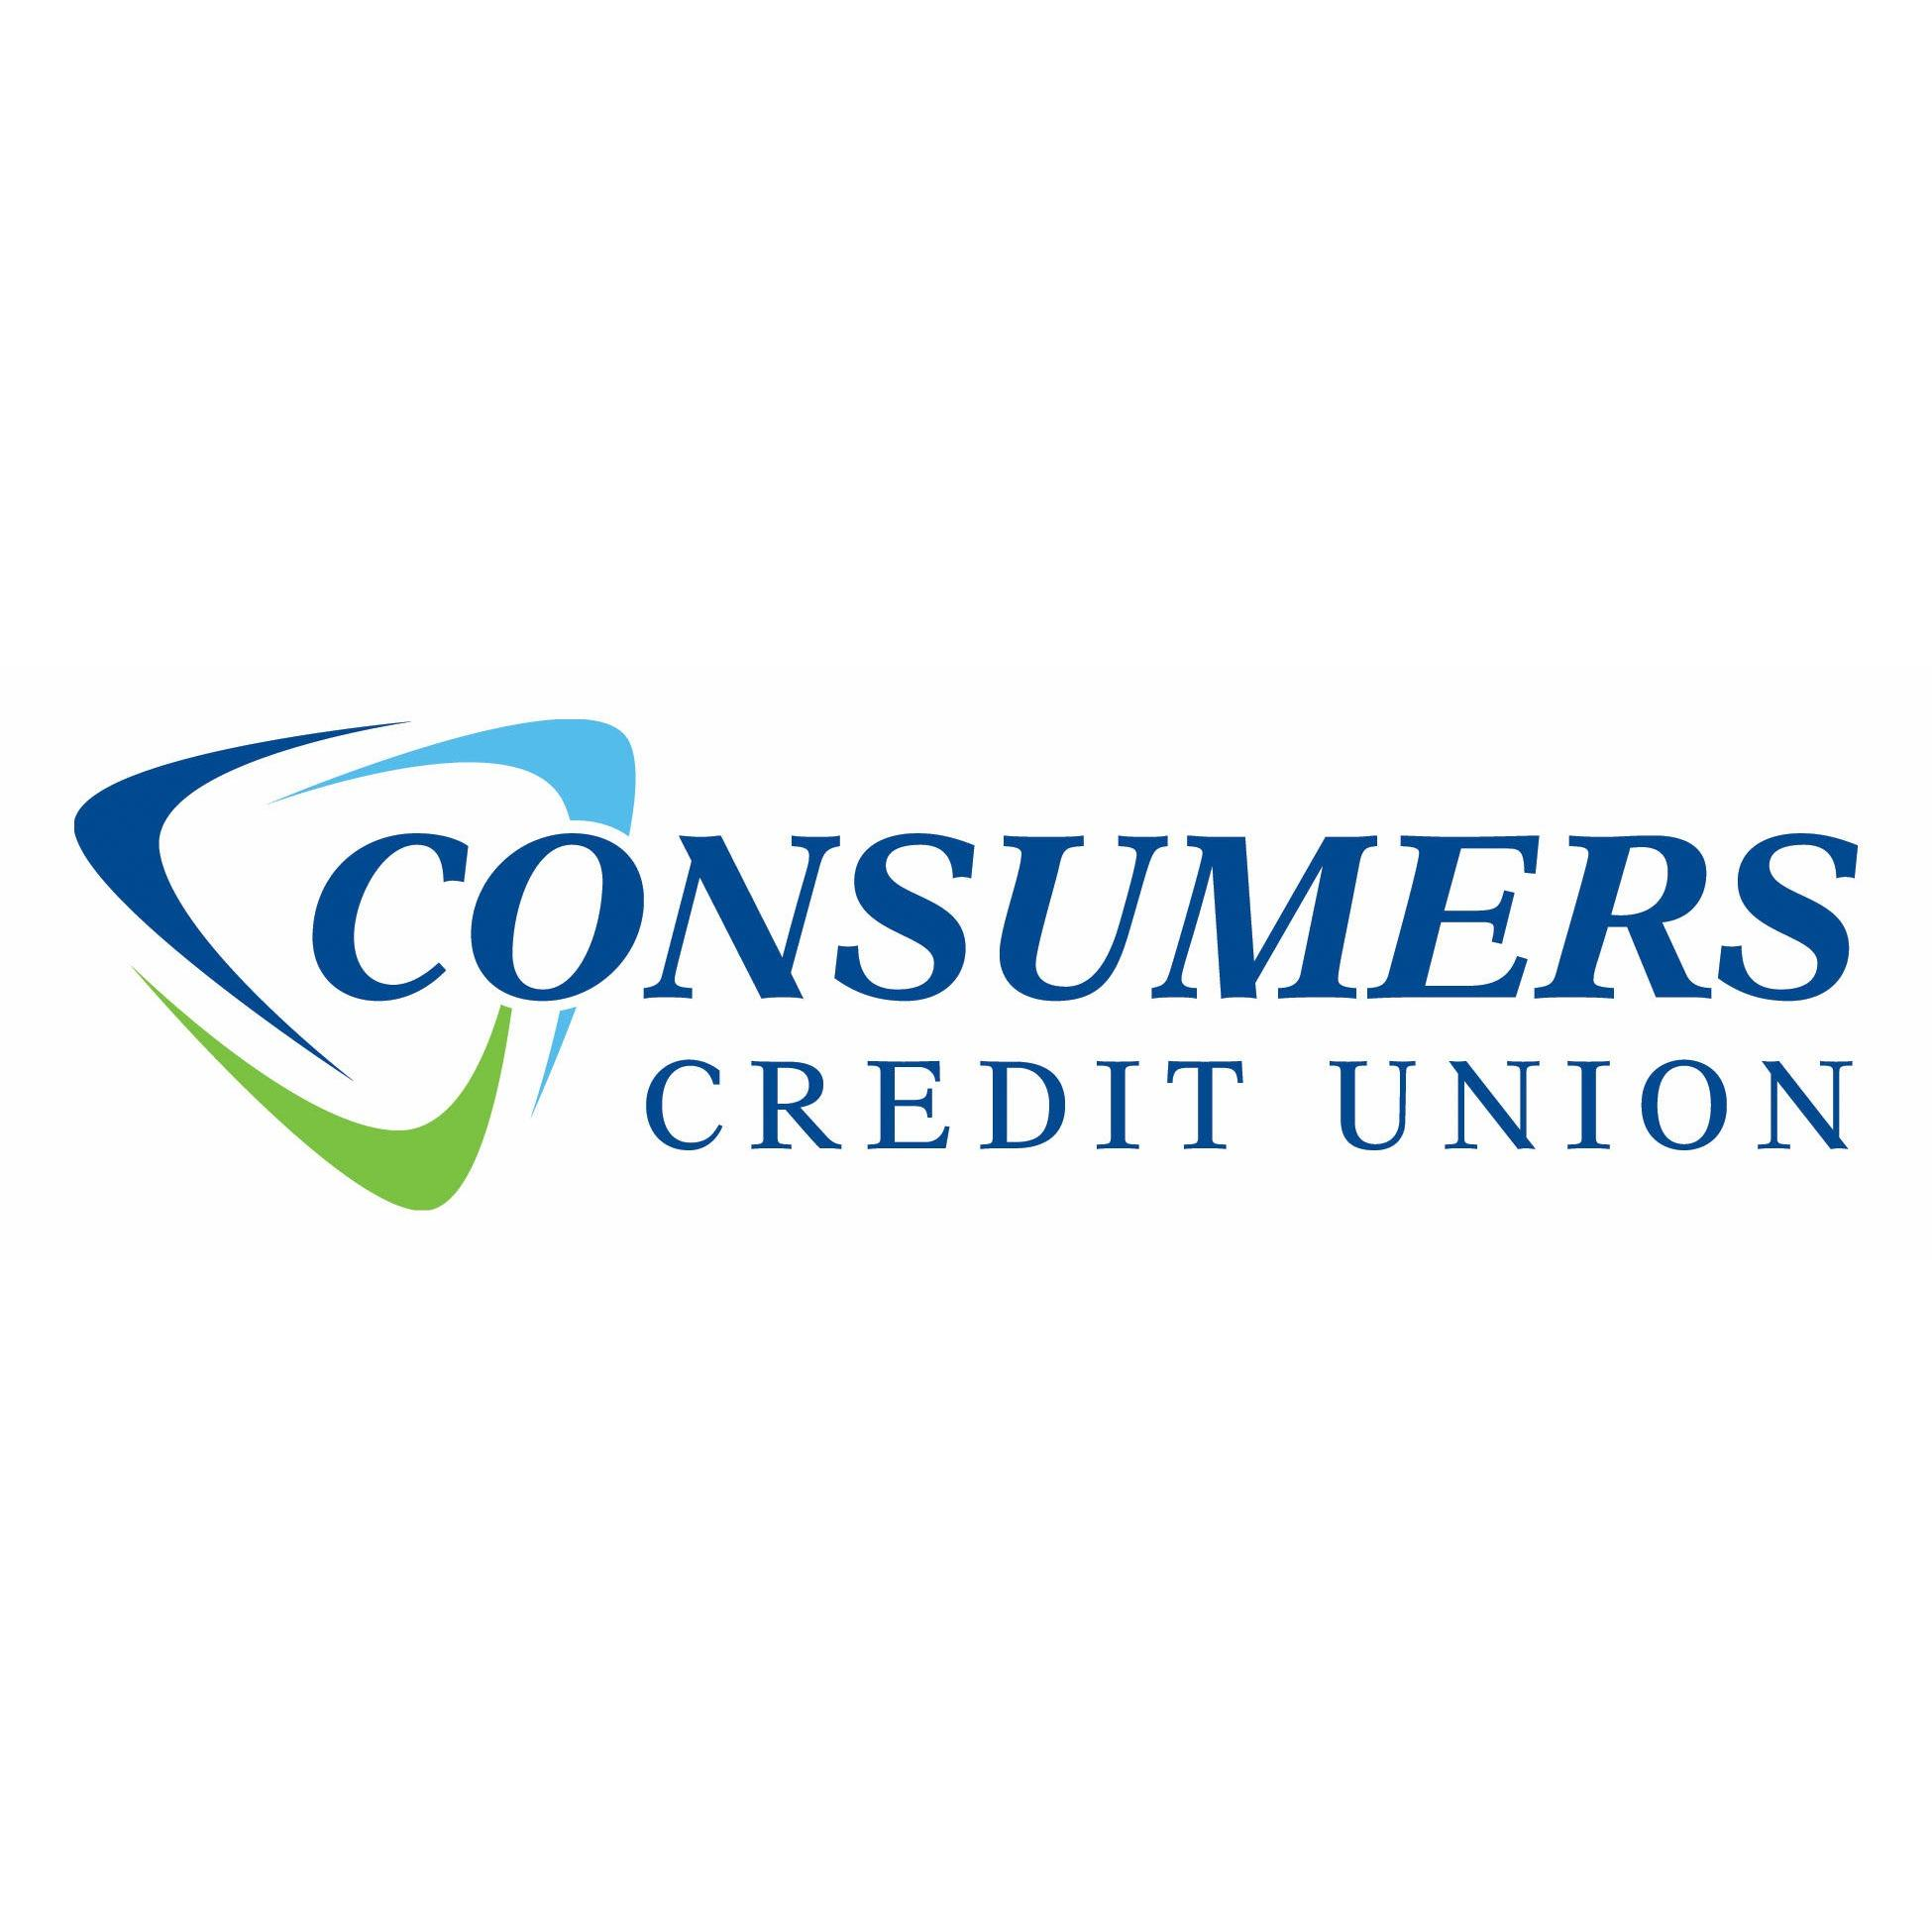 Consumers Credit Union - Waukegan, IL 60079 - (877)275-2228 | ShowMeLocal.com